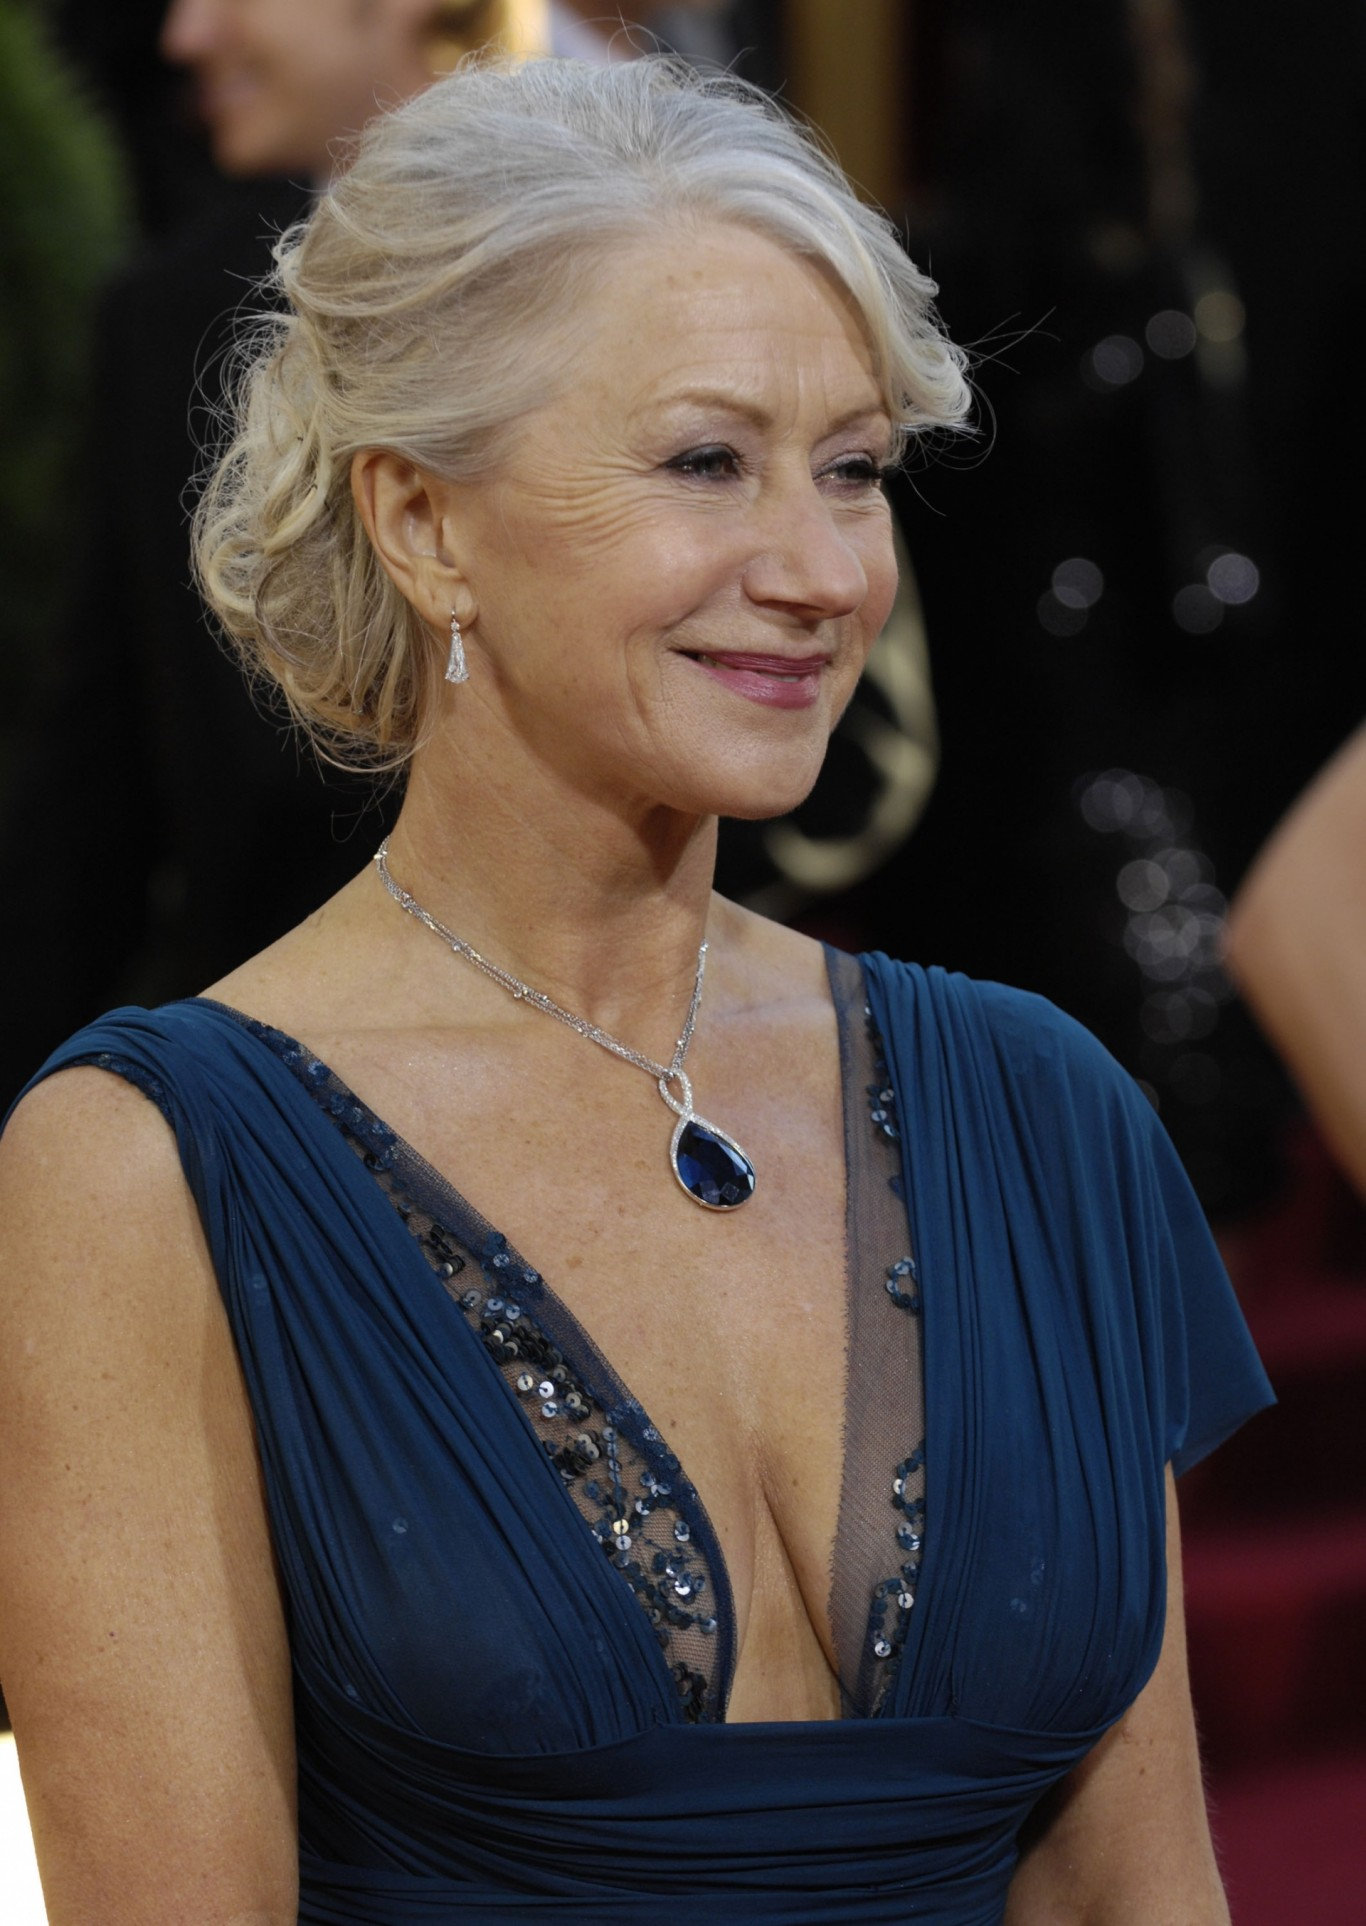 Helen Mirren shows off her cleavage in an plunging neckline in 2007